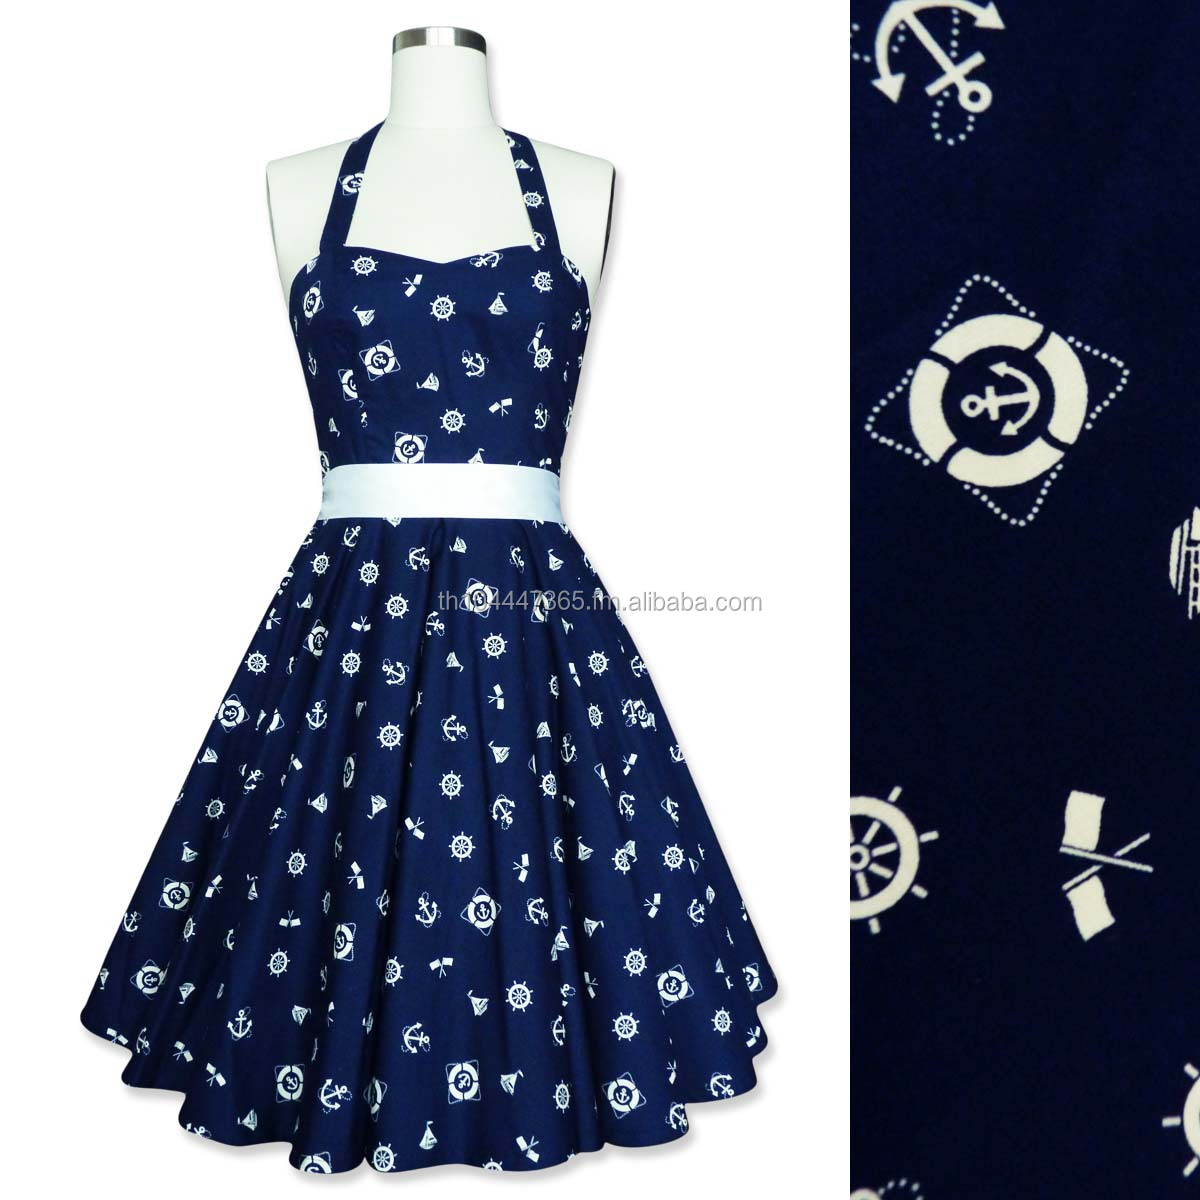 Rockabilly 50s Sailor Nautica Corset Petticoat Gothic Retro Punk Emo Pin Up Vintage Party Swing Dress